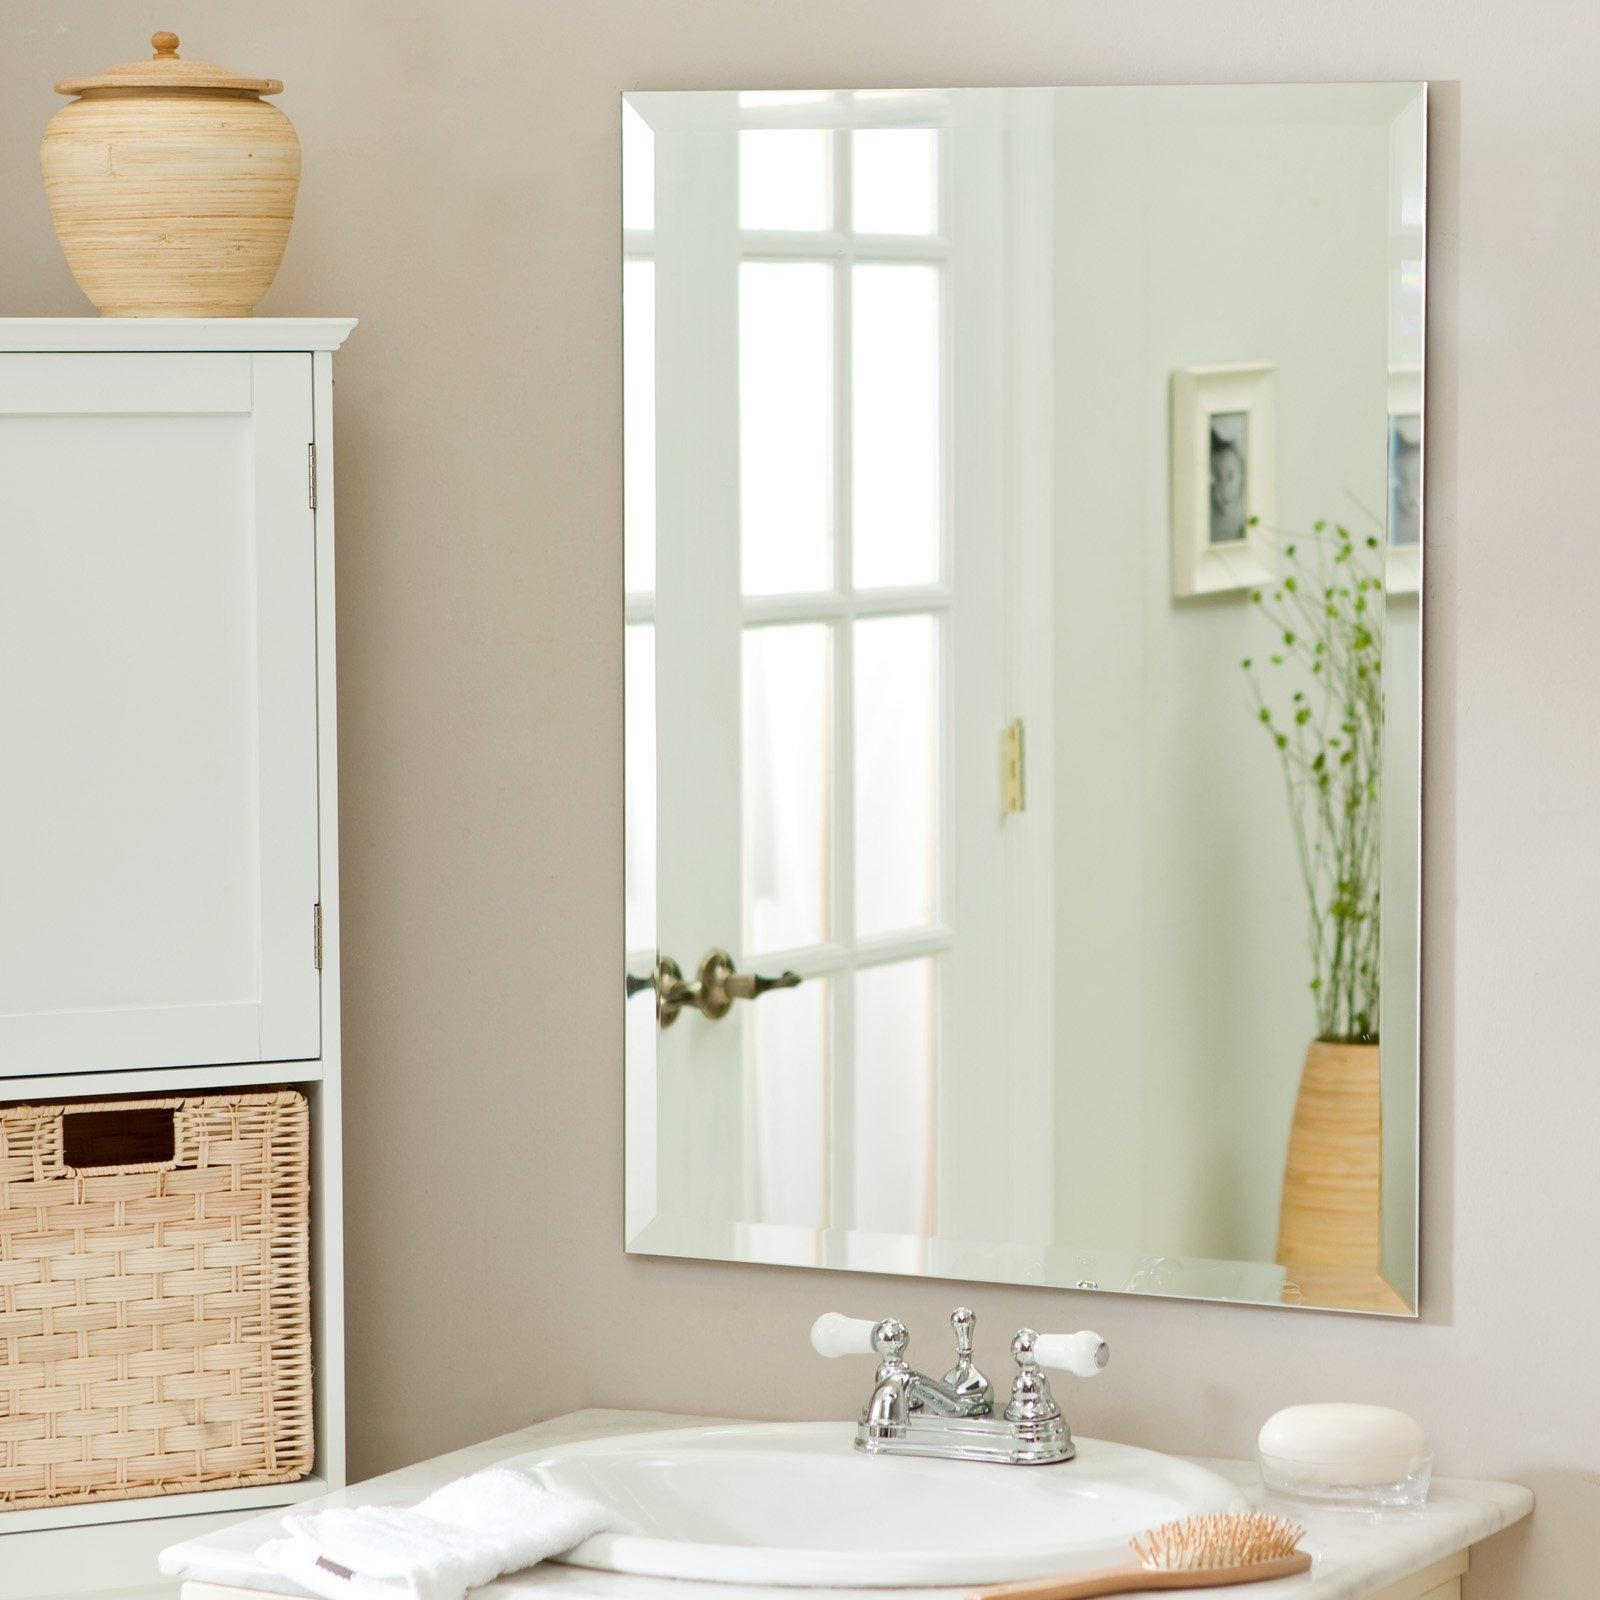 Square Frameless Wall Mirror Vintage Frameless Wall Mirror For No Frame Wall Mirrors (Image 17 of 20)